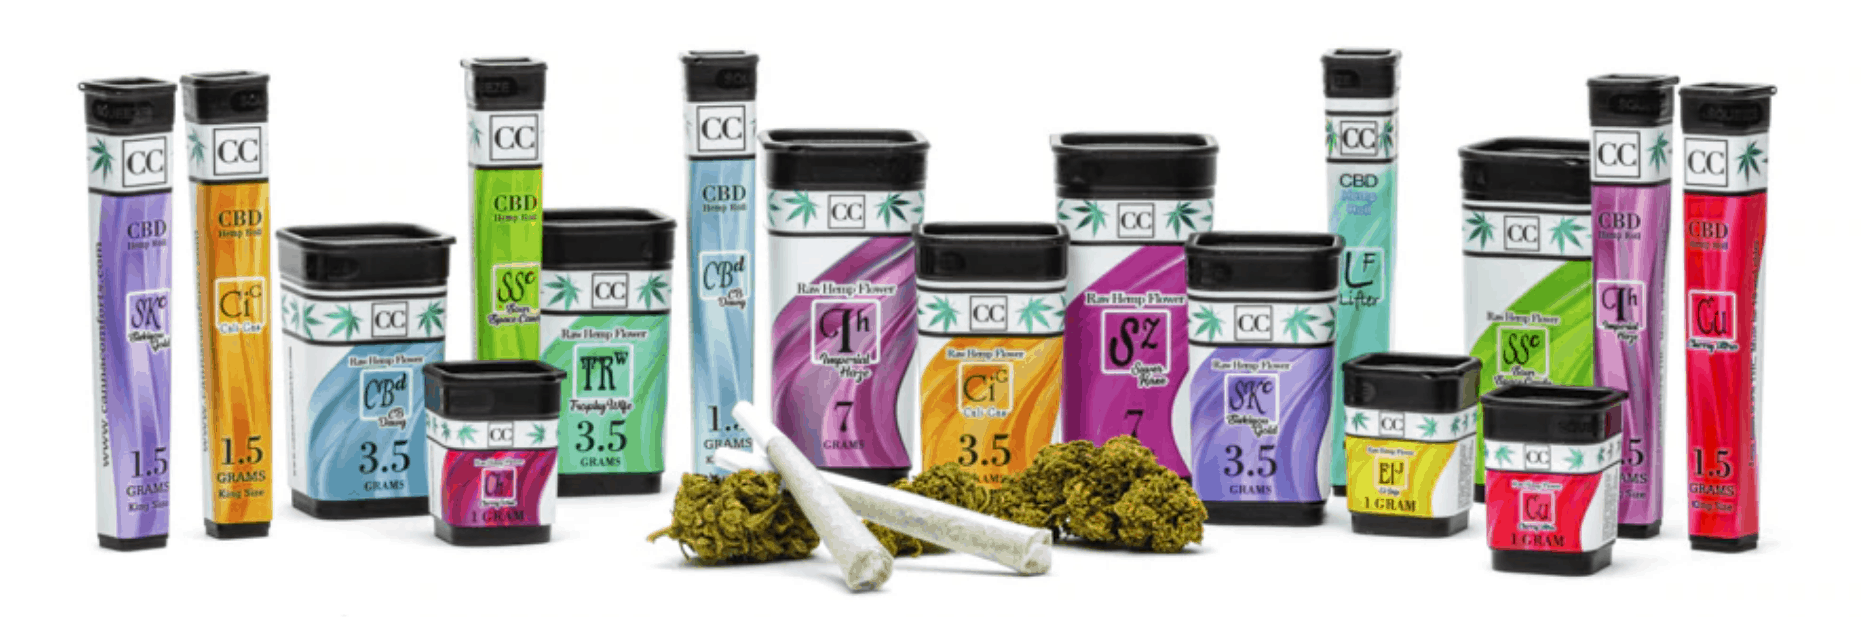 Canna Comforts CBD Coupon Code Our Products